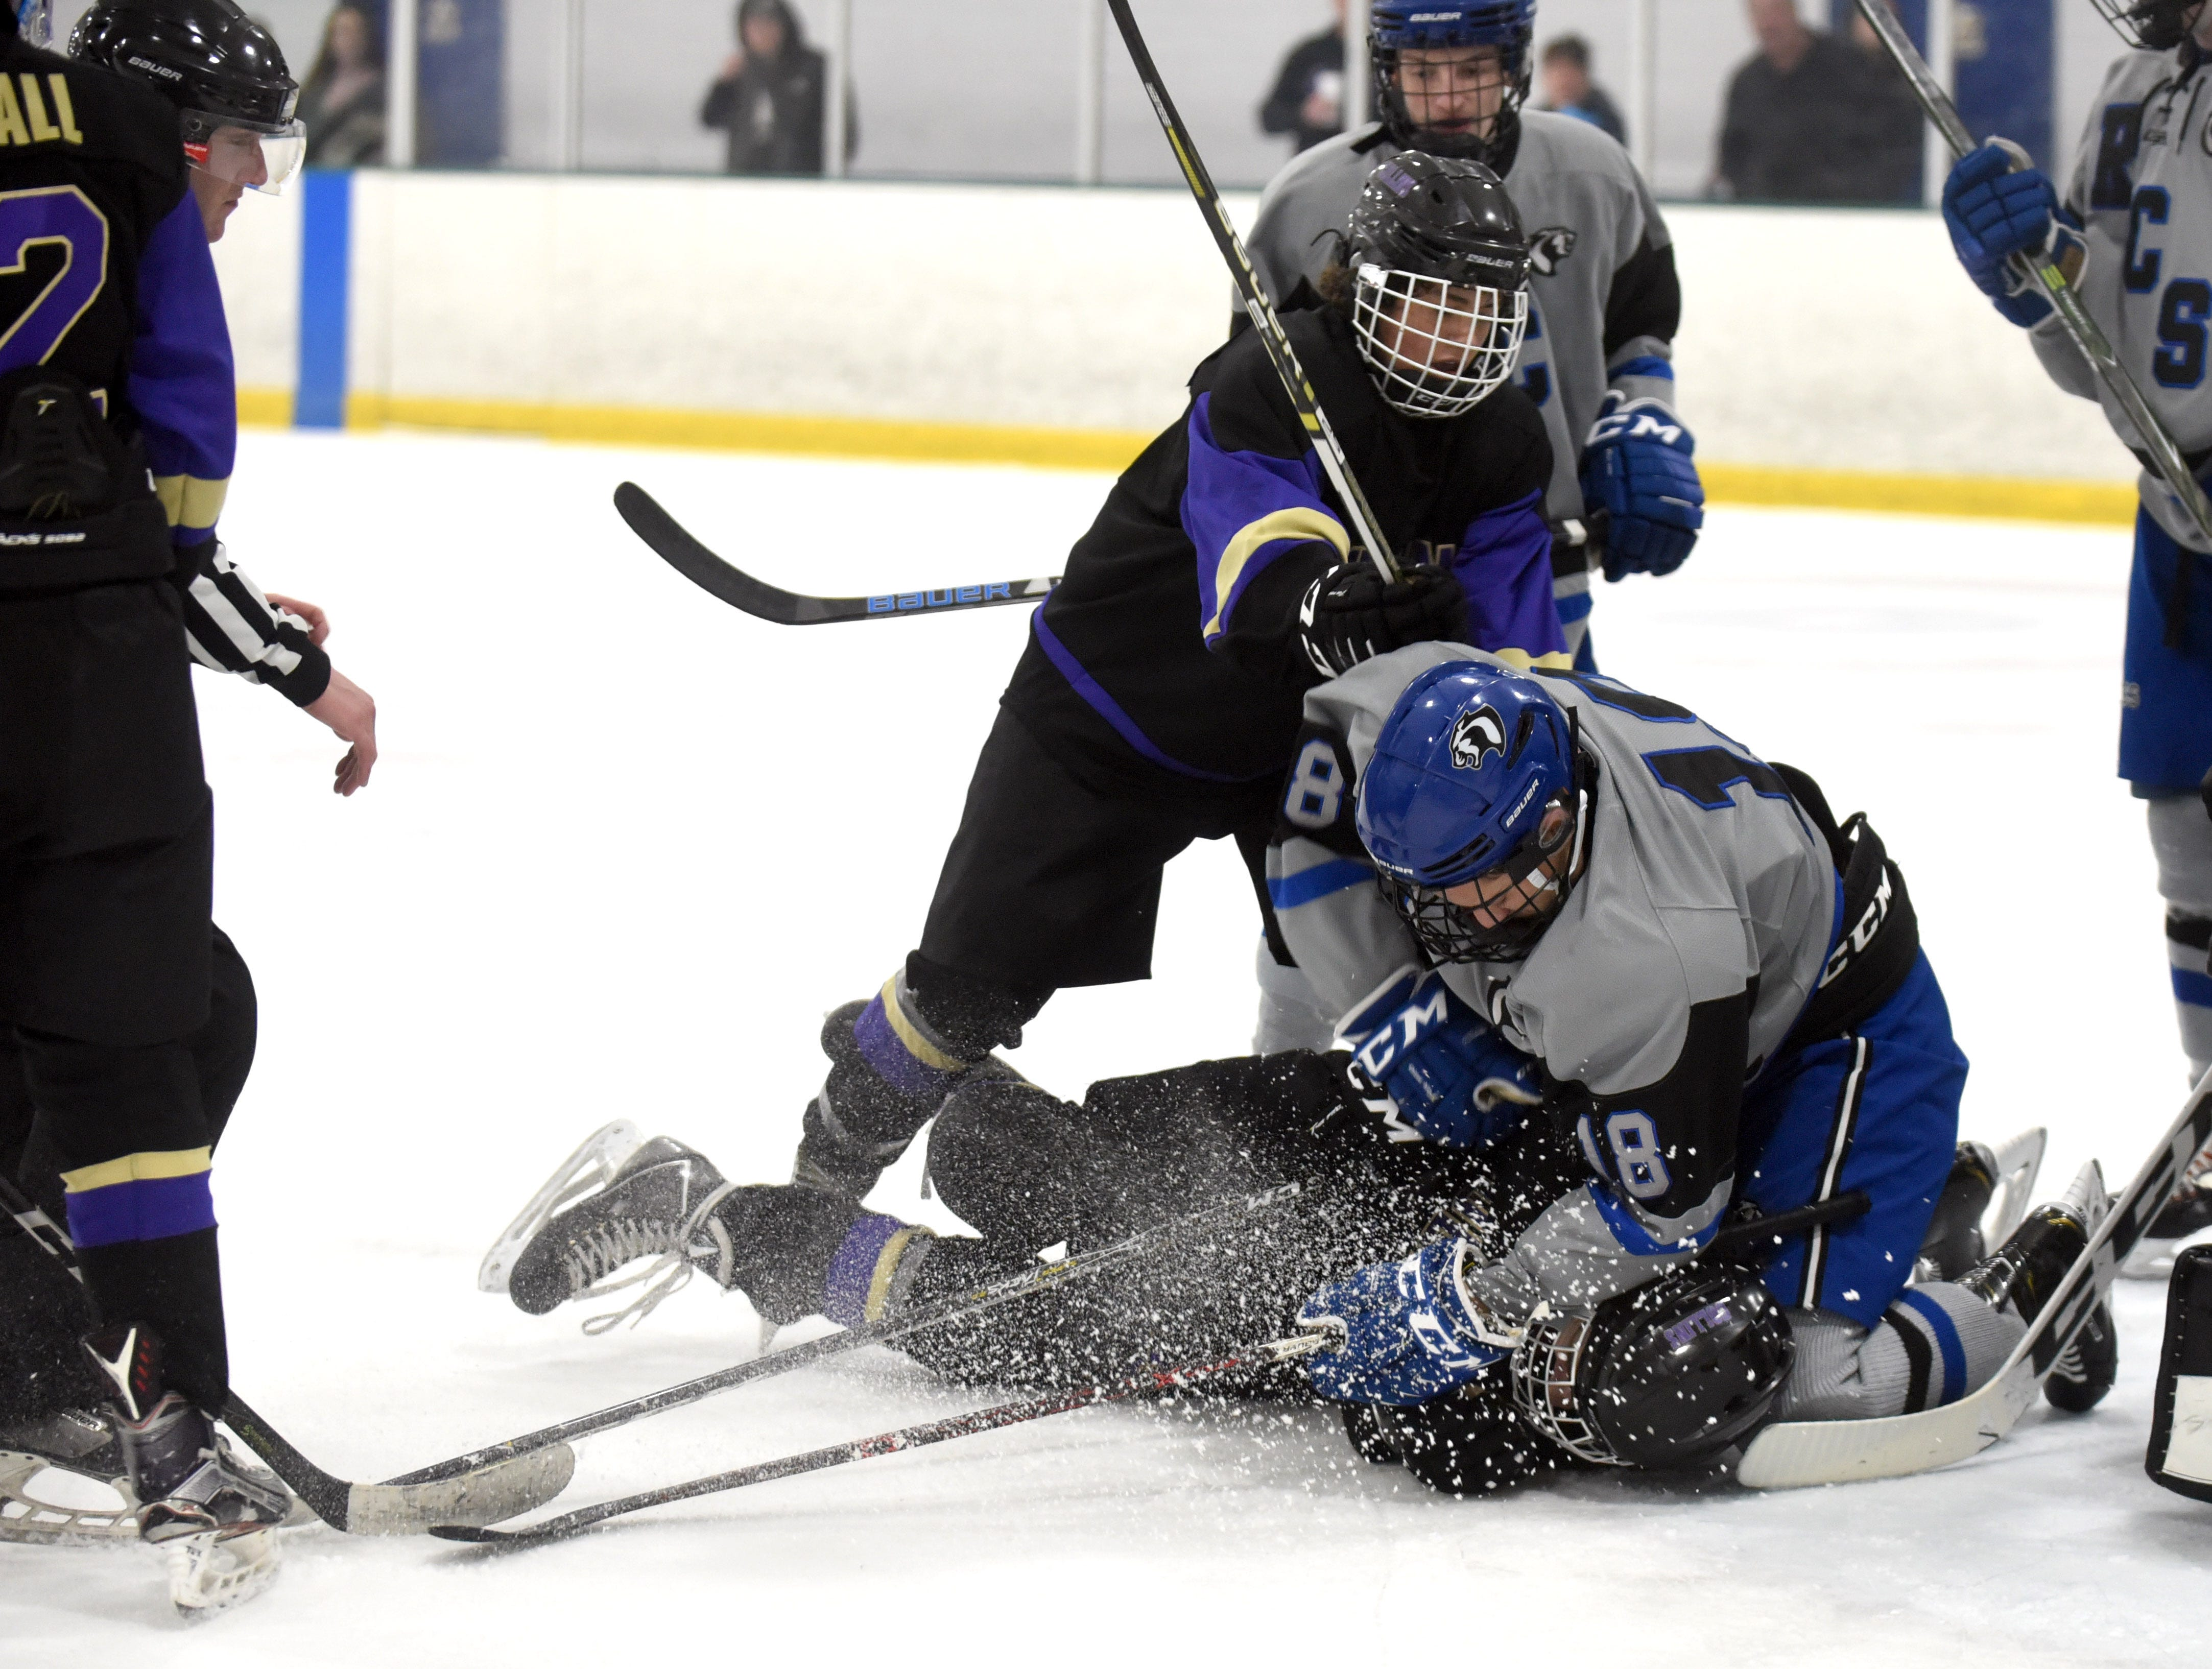 A fight breaks out between Fort Collins' Bryce Hall and Resurrection Christian's Perry McIntire in front of the Resurrection Christian goal during the game on Saturday, Feb 2, at NoCo Ice Center, 7900 N Fairgrounds Ave, in Fort Collins.